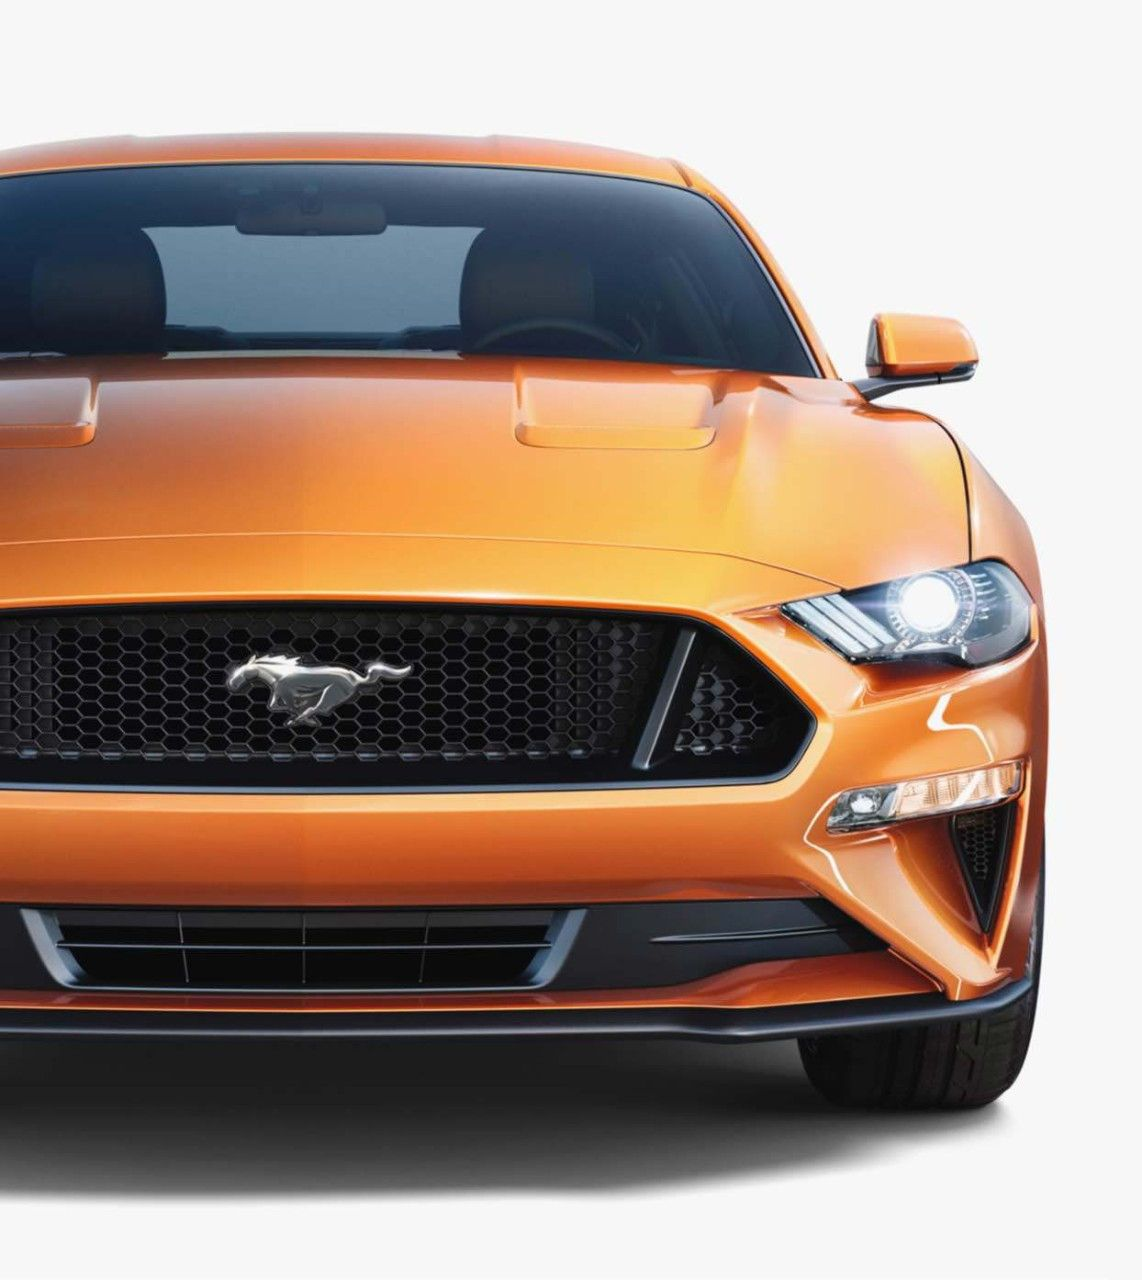 2018 Ford Mustang Sports Car